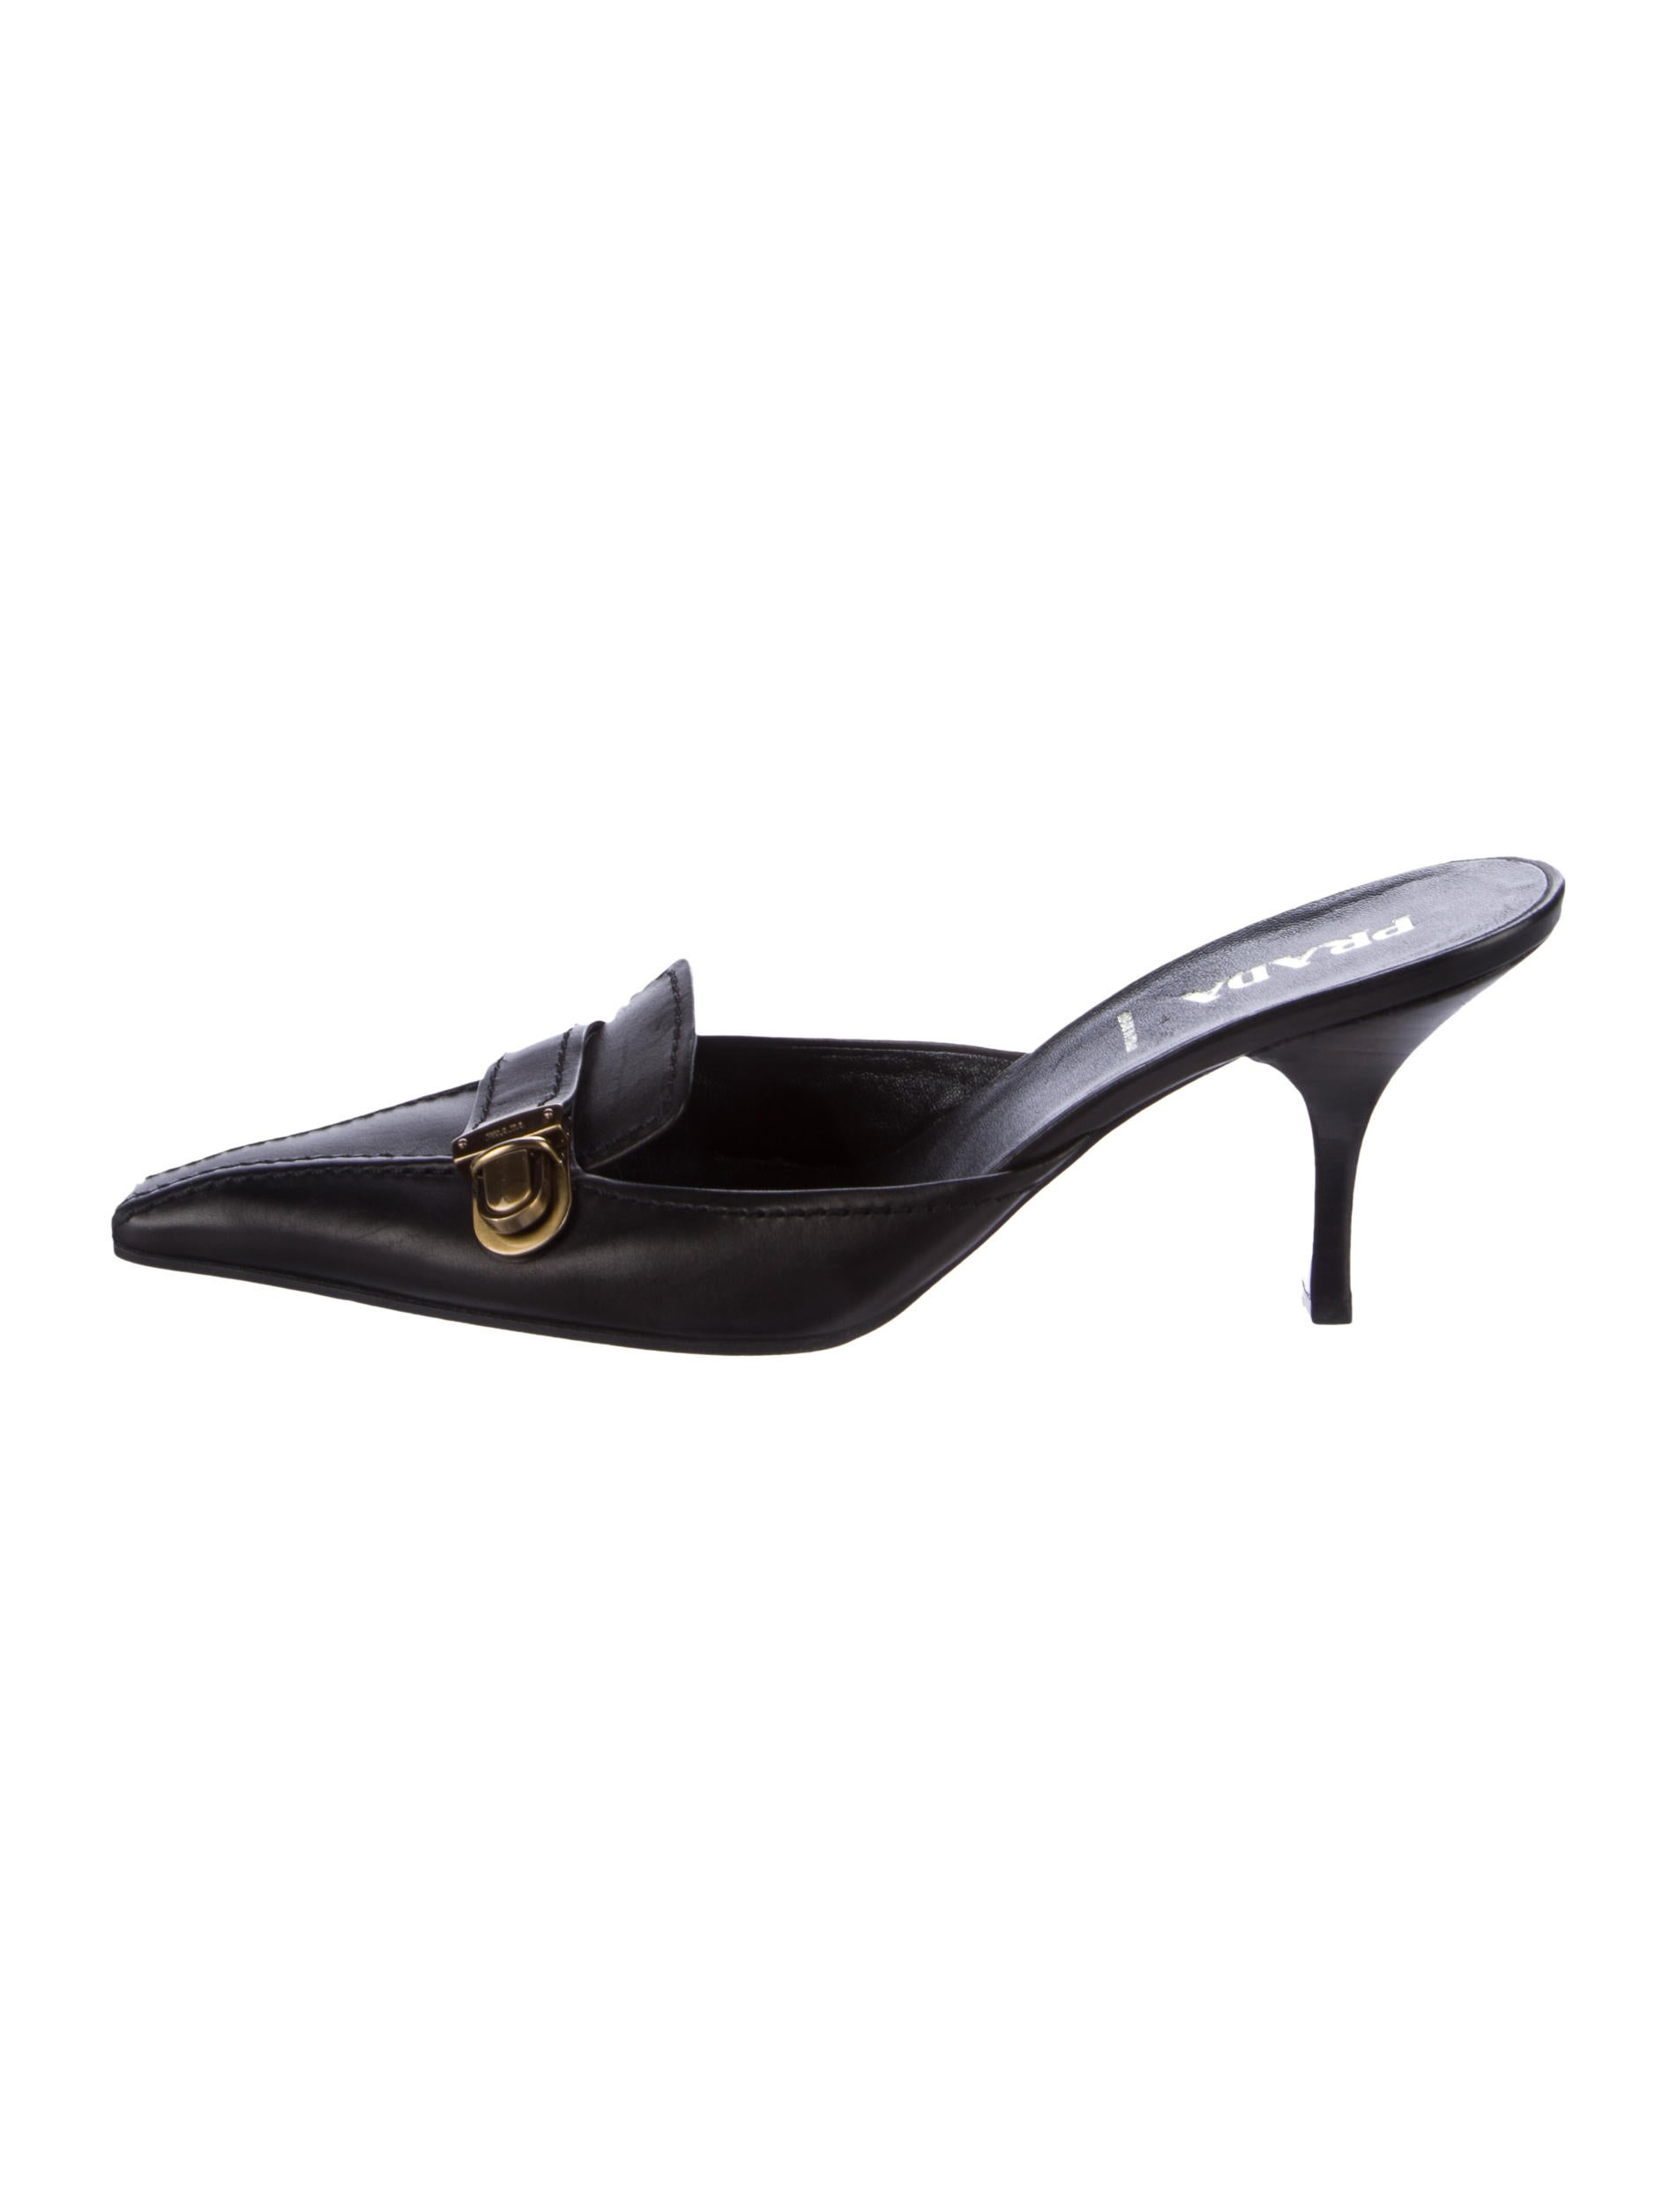 Prada Leather Square-Toe Mules the cheapest cheap online clearance Manchester newest genuine online szA9XnF